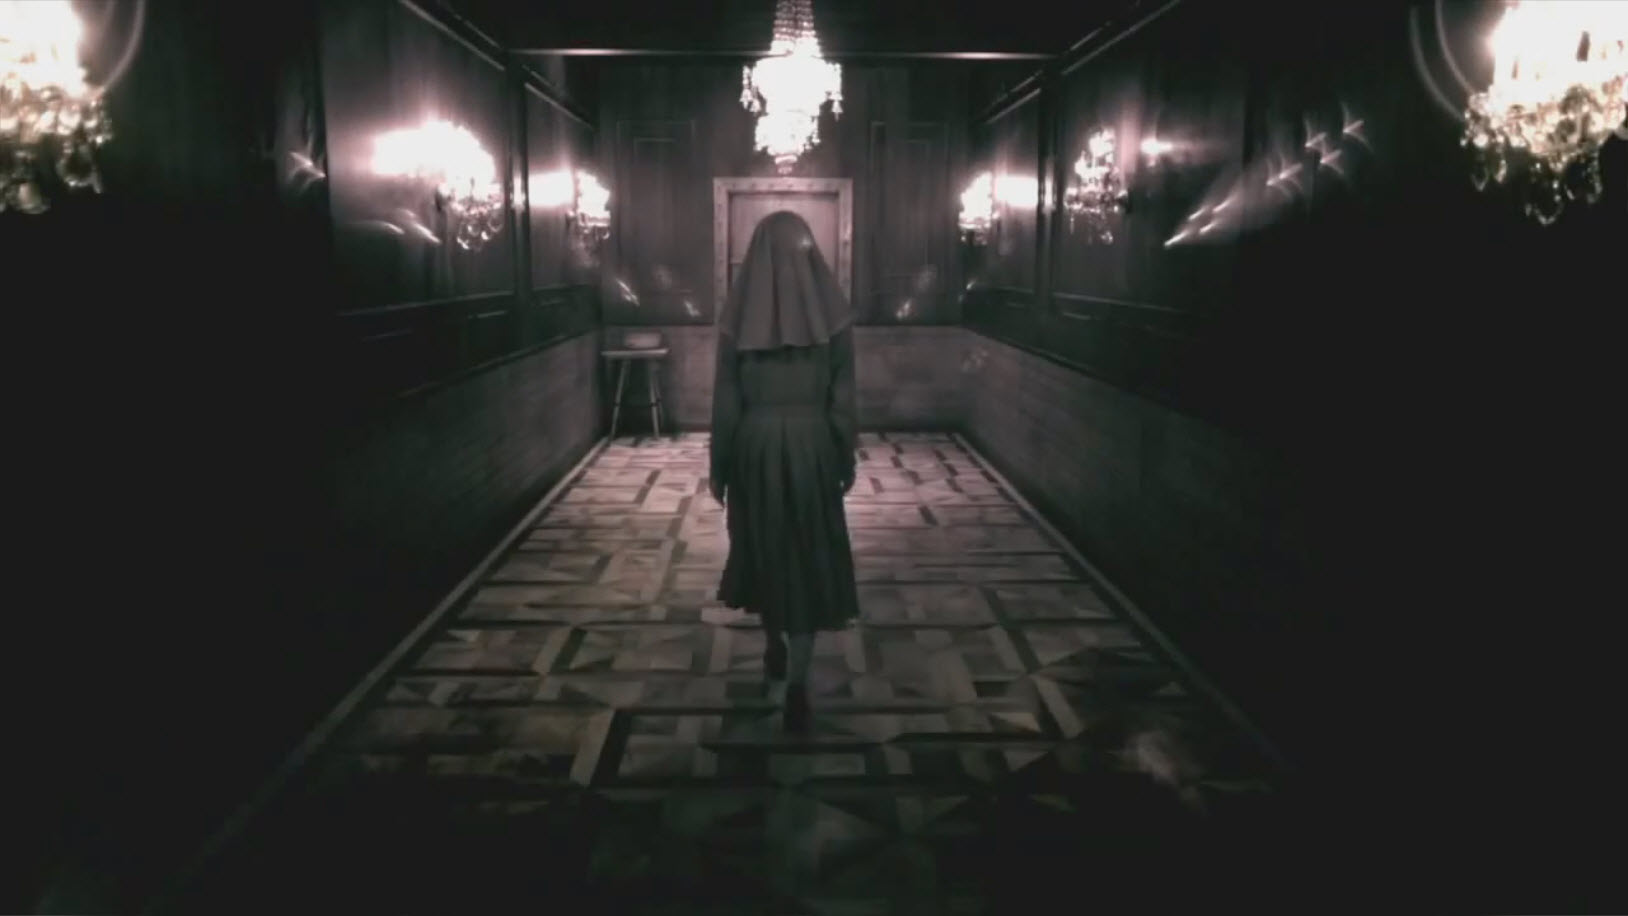 nun-goes-to-asylum-door-in-american-horror-story-images-22